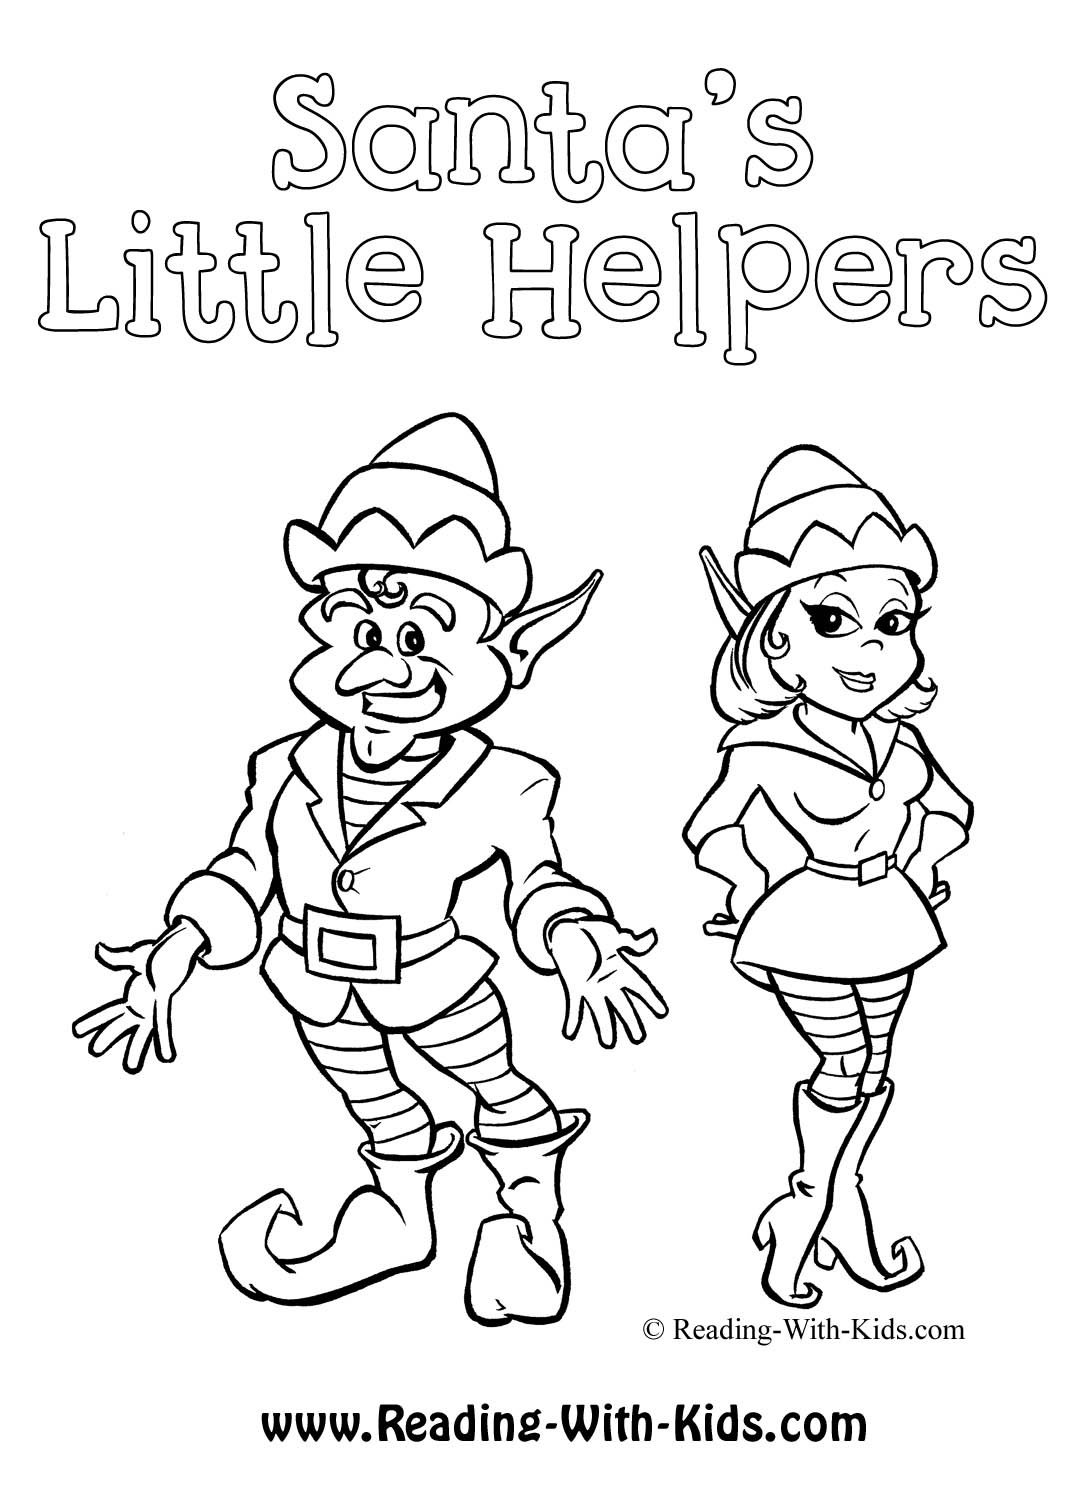 Santa Claus And Elves Coloring Pages With Elegant Download Dora Feels Happy To Meet At Christmas